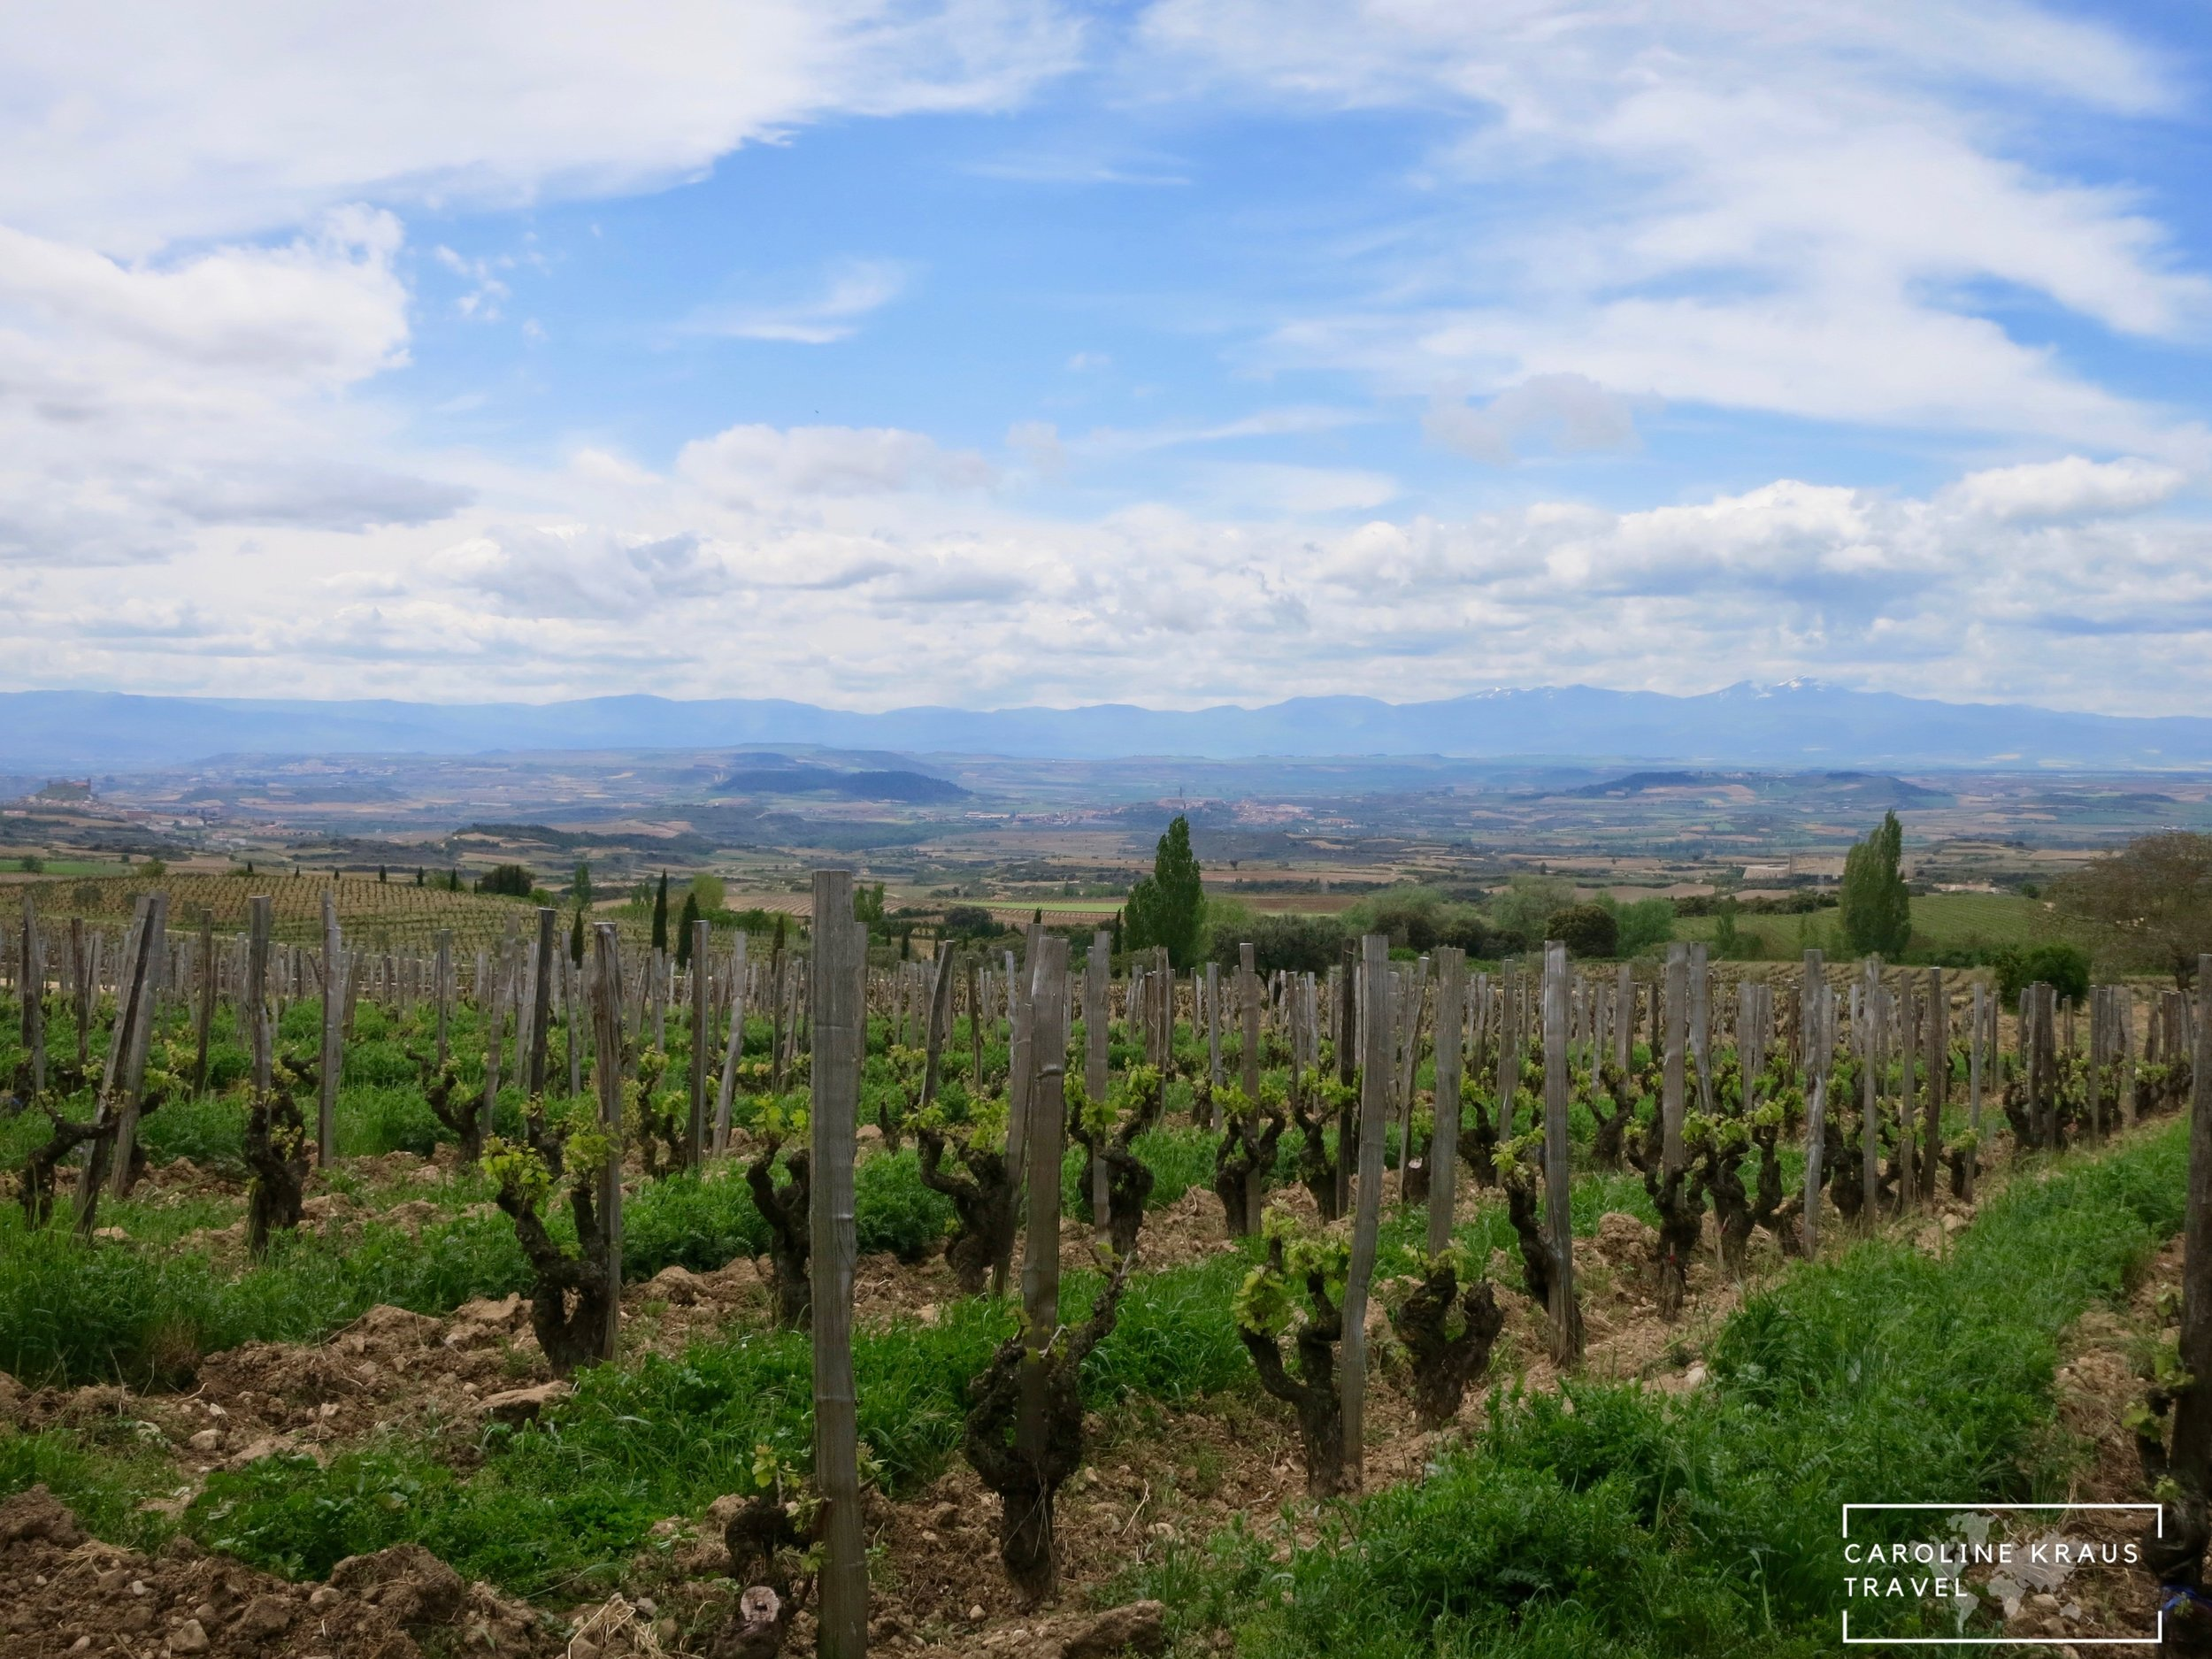 View from Remelluri Vineyard in La Rioja, Spain